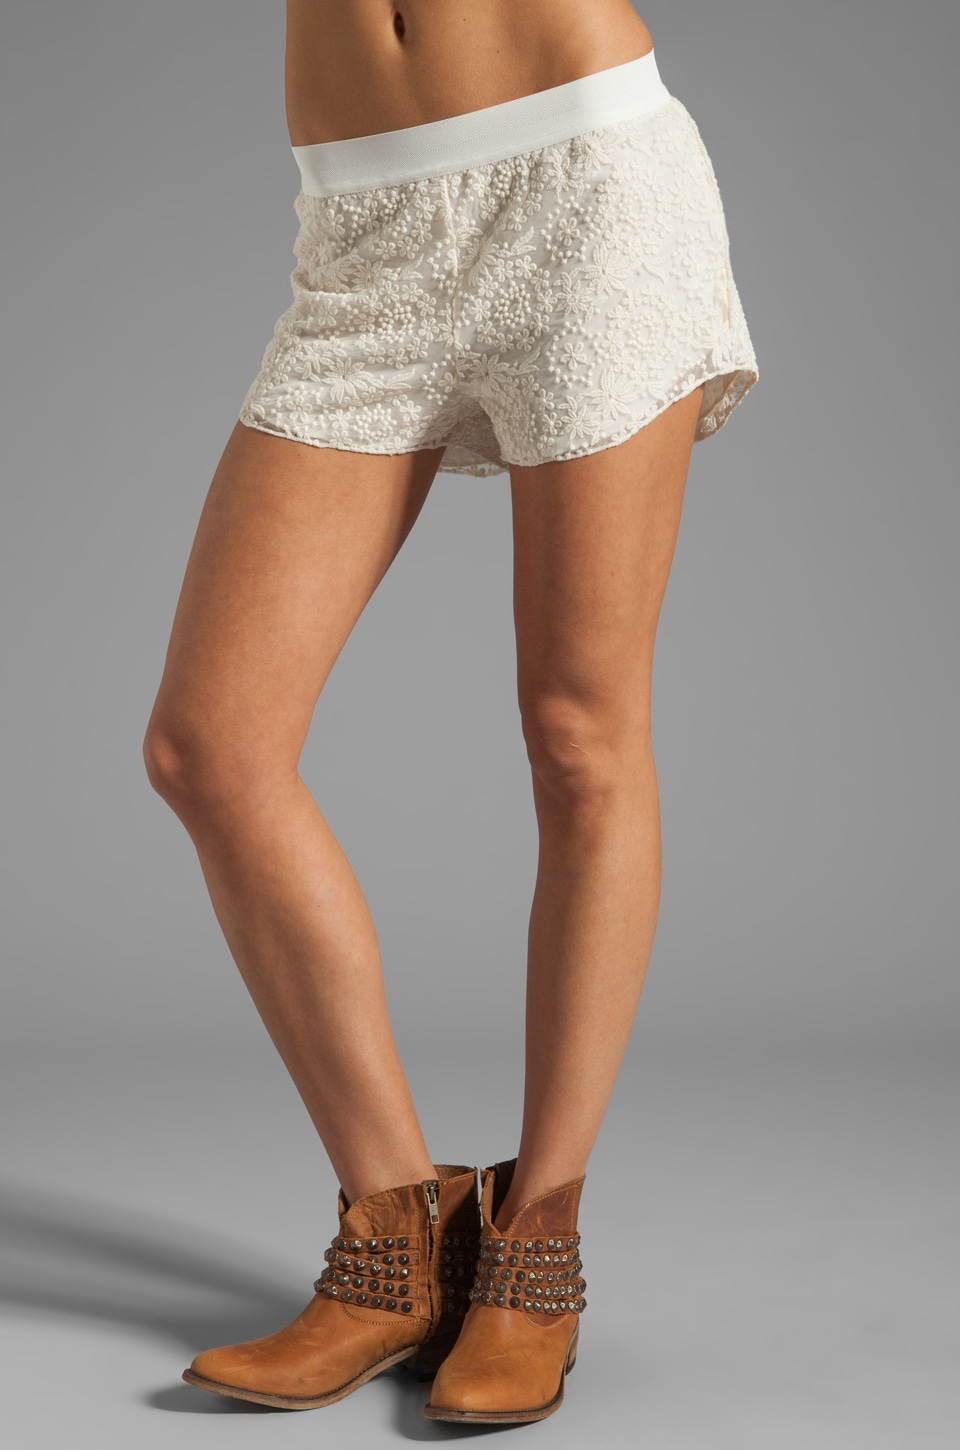 SAM&LAVI Blanche Lace Shorts in Off White